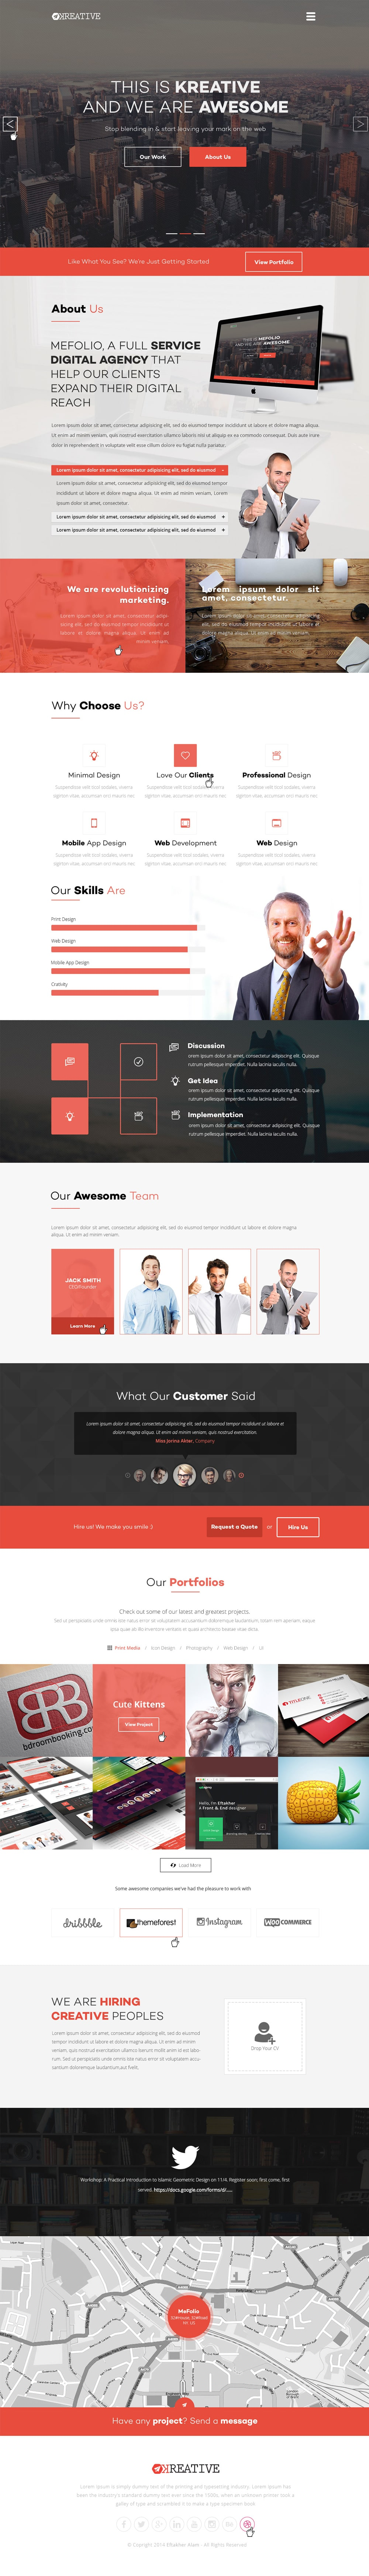 free agency website templates psd css author. Black Bedroom Furniture Sets. Home Design Ideas